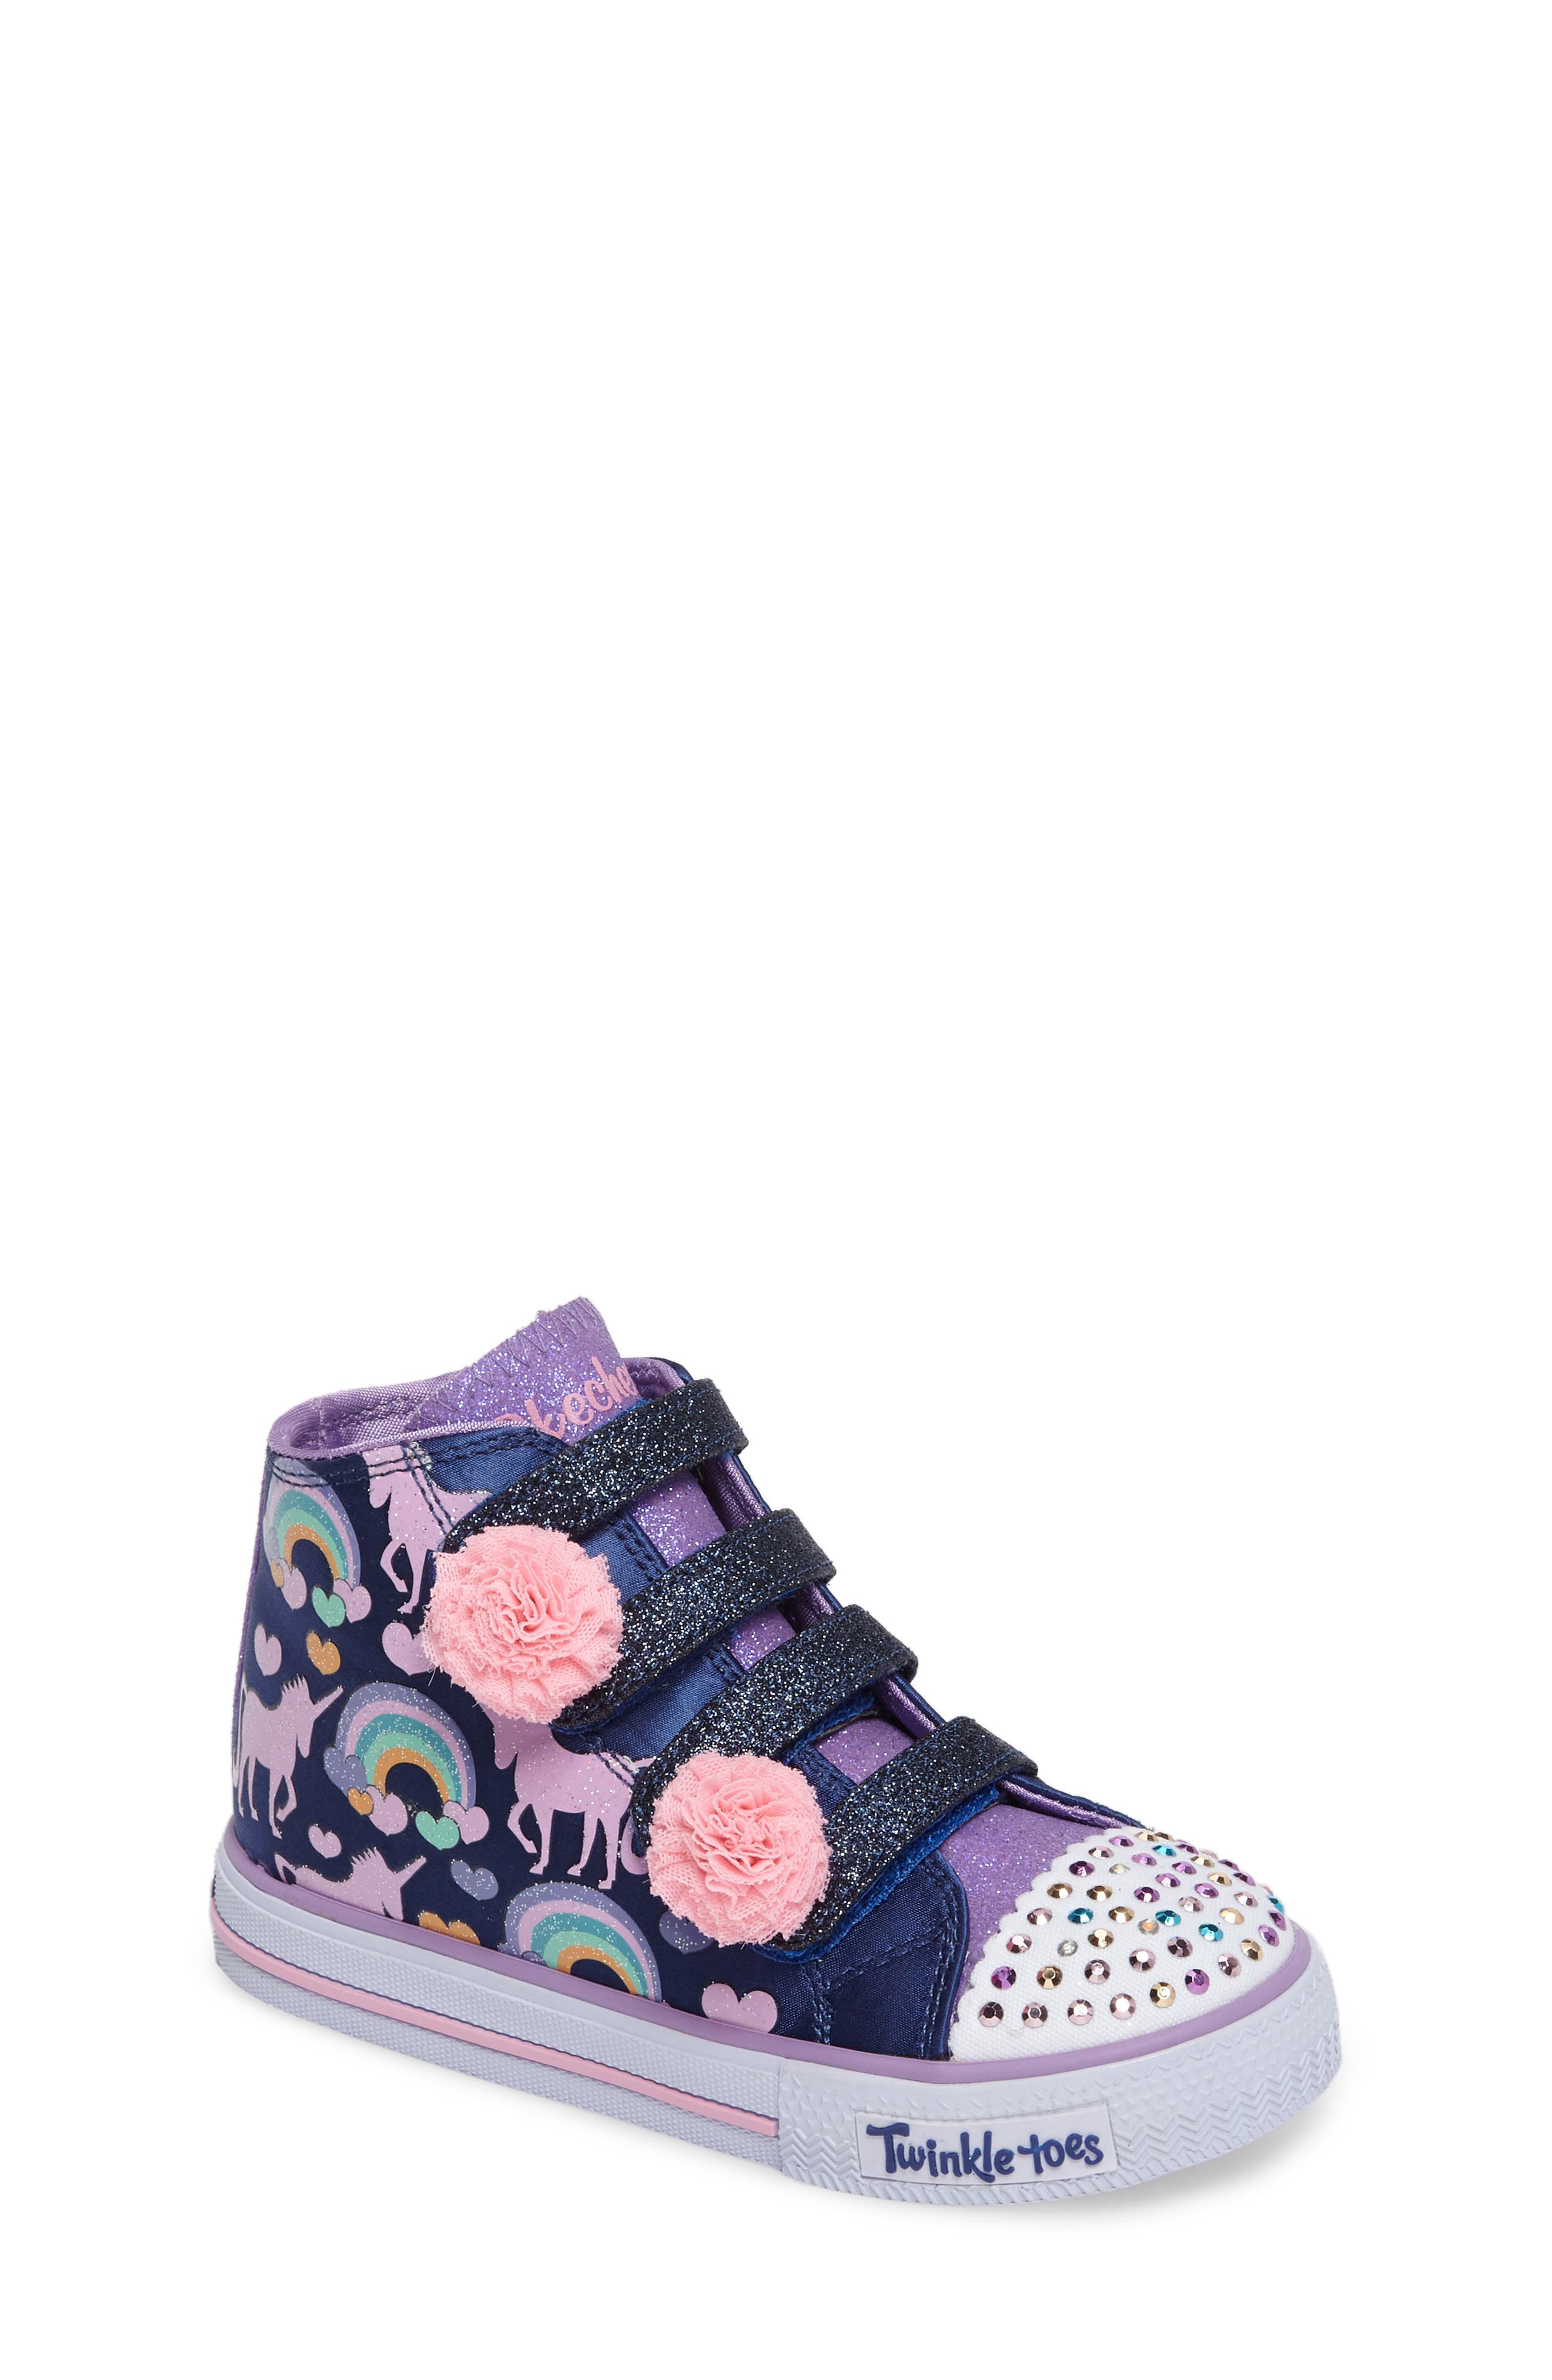 Twinkle Toes Shuffles High Top Sneaker,                         Main,                         color, 400